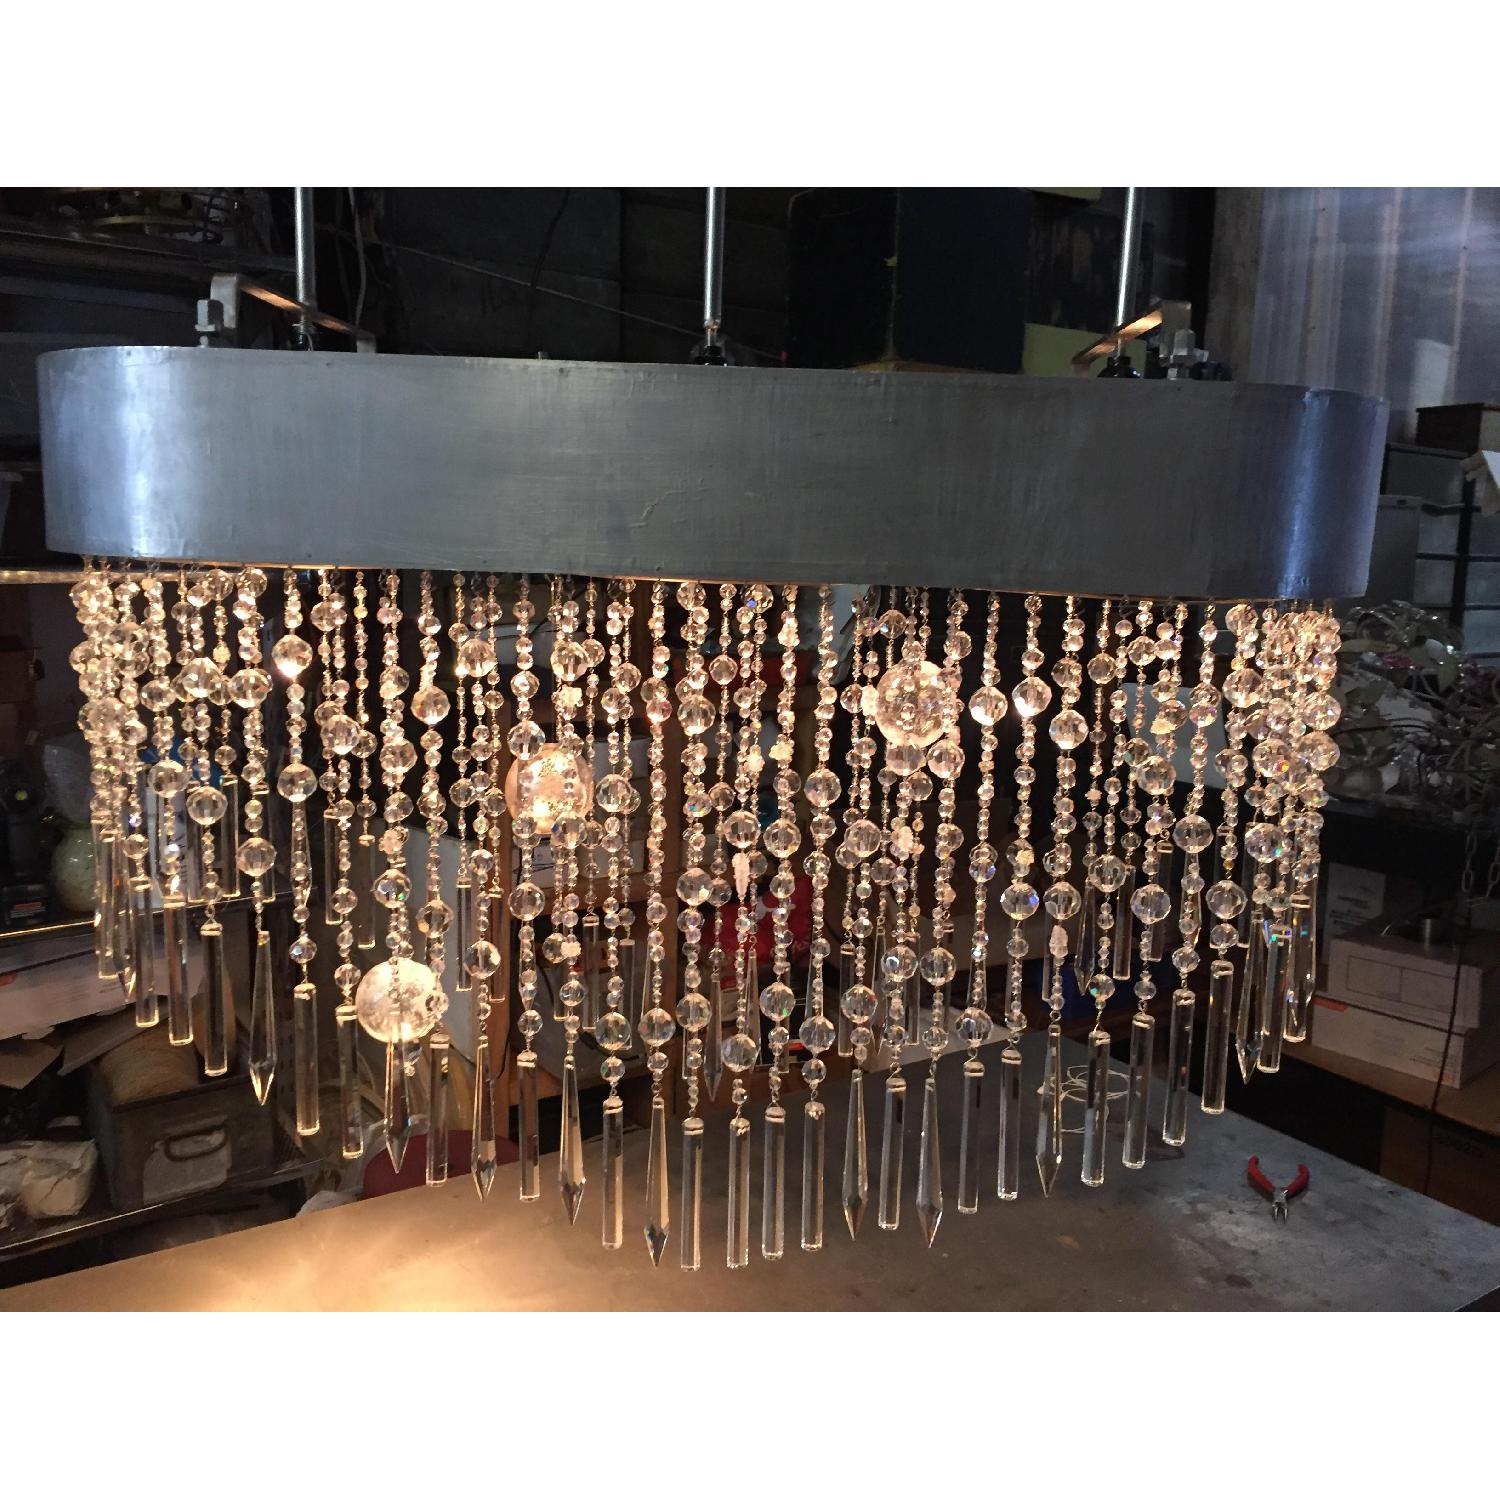 Mariann Megna Glass Custom Designed Modern Chandelier-1